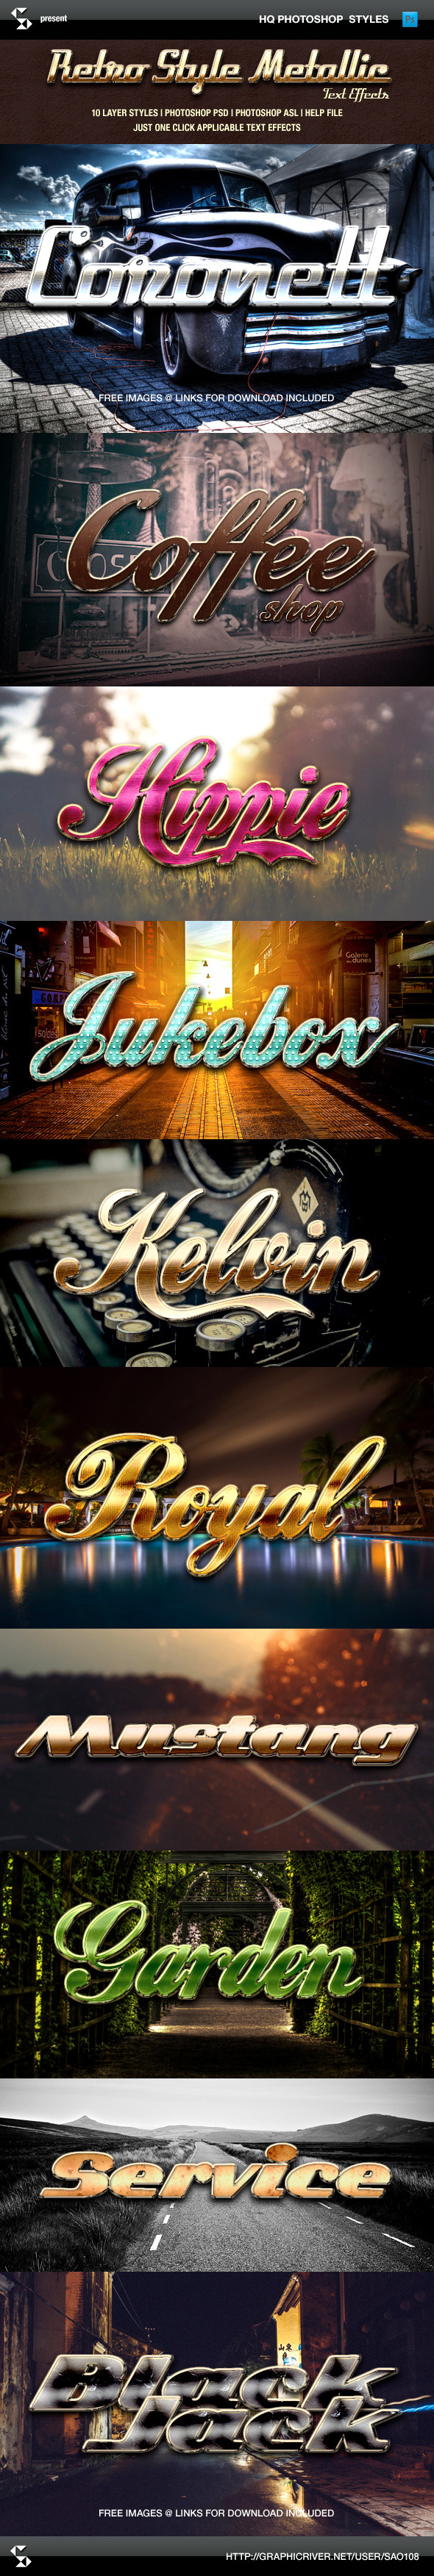 Retro Style Metallic Text Effects - Text Effects Styles